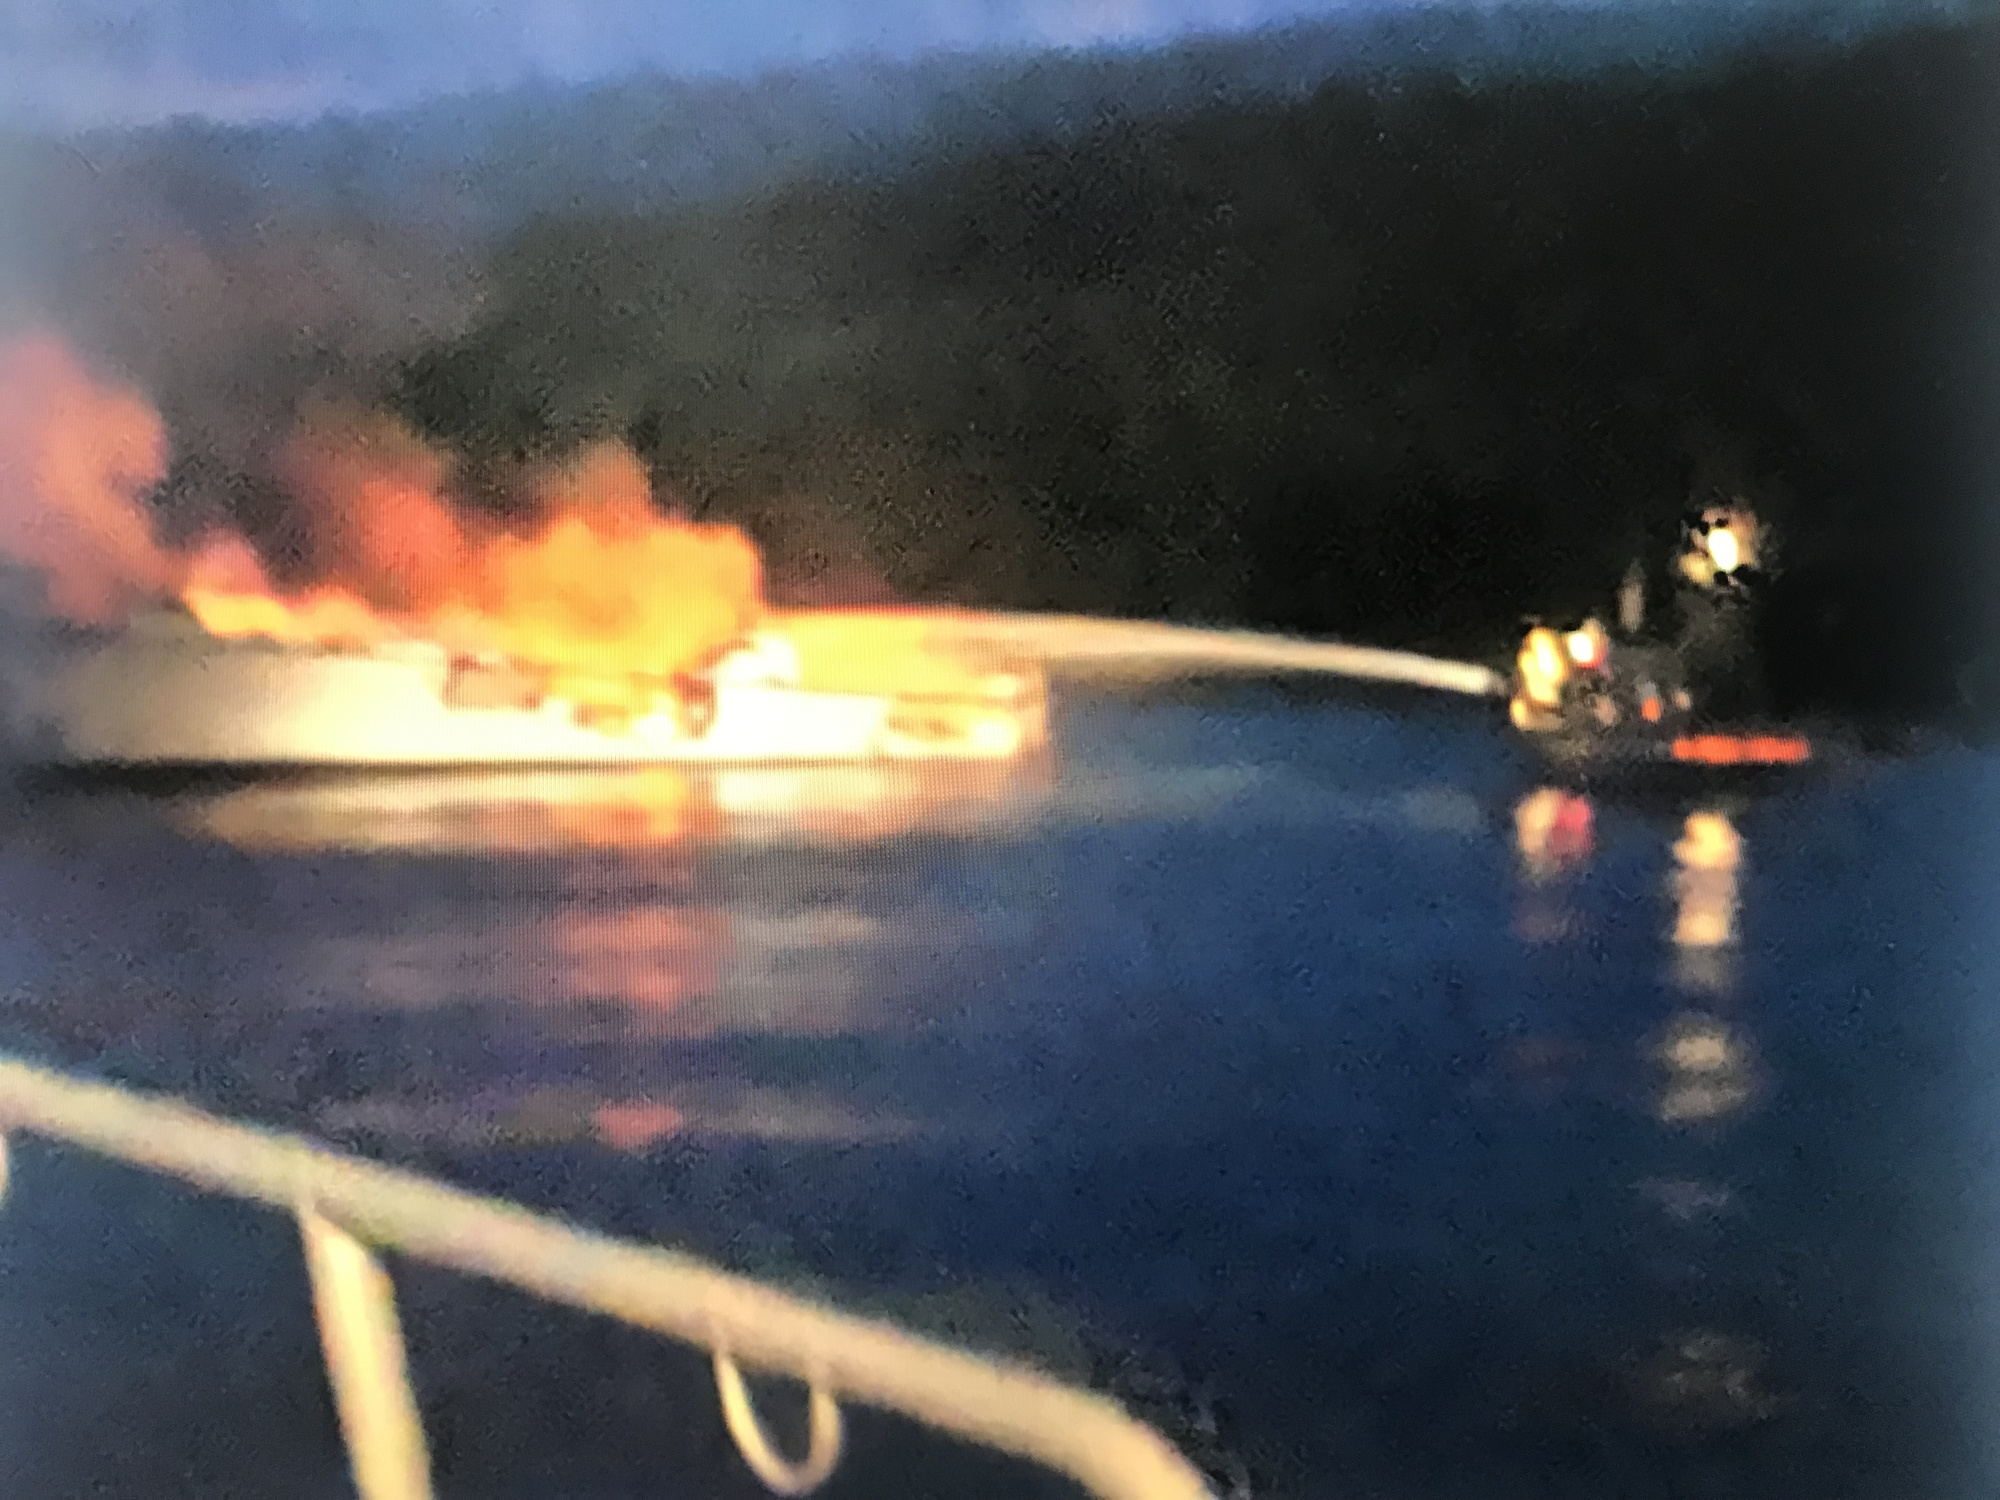 Coast Guard, locals respond to boat fire near Santa Cruz Island